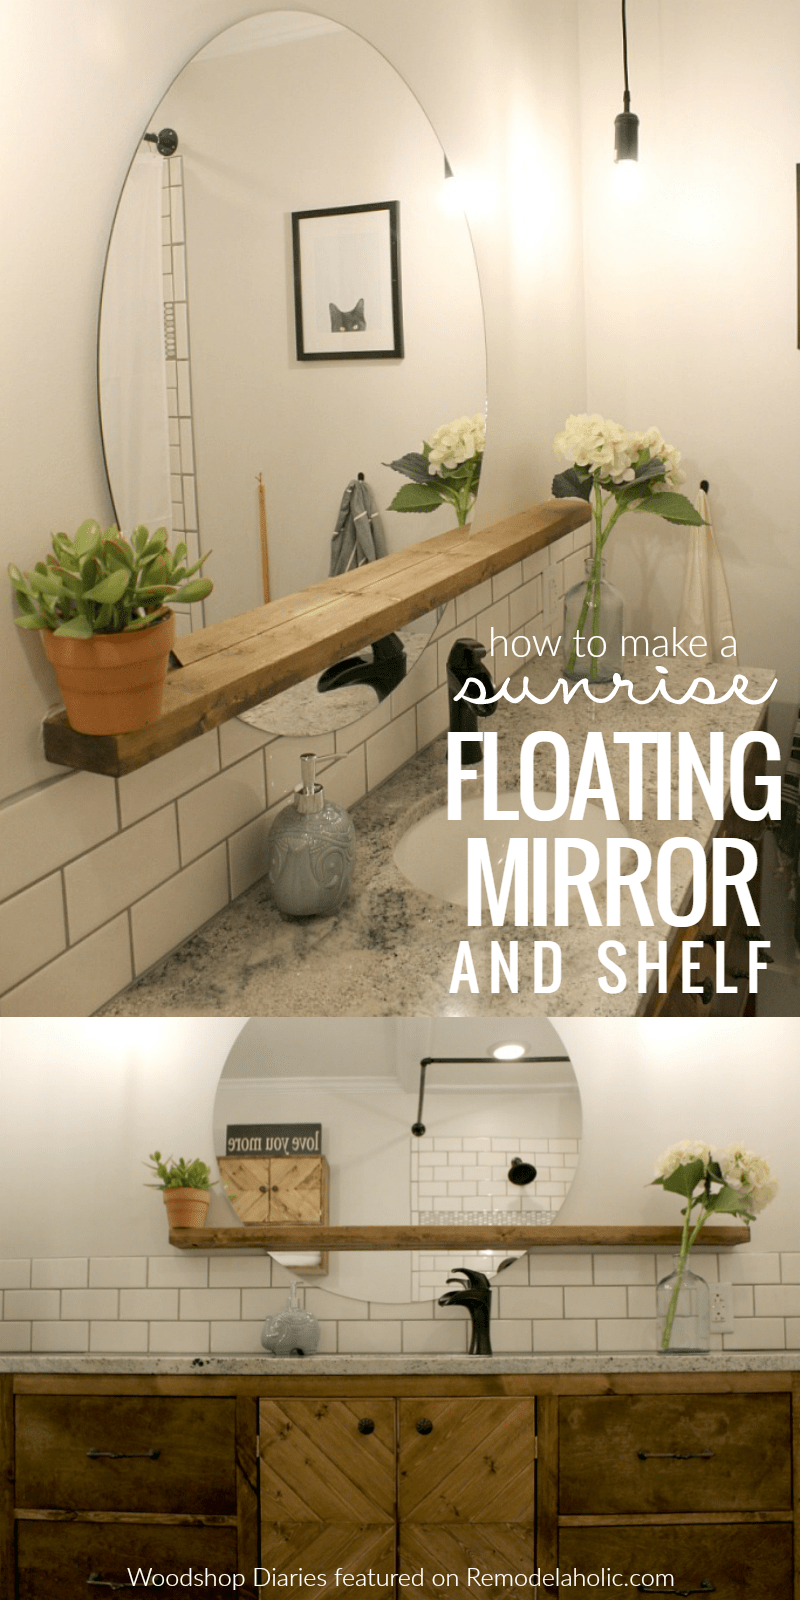 Give An Inexpensive Basic Round Mirror A Modern Update With This DIY  Sunrise Floating Mirror And